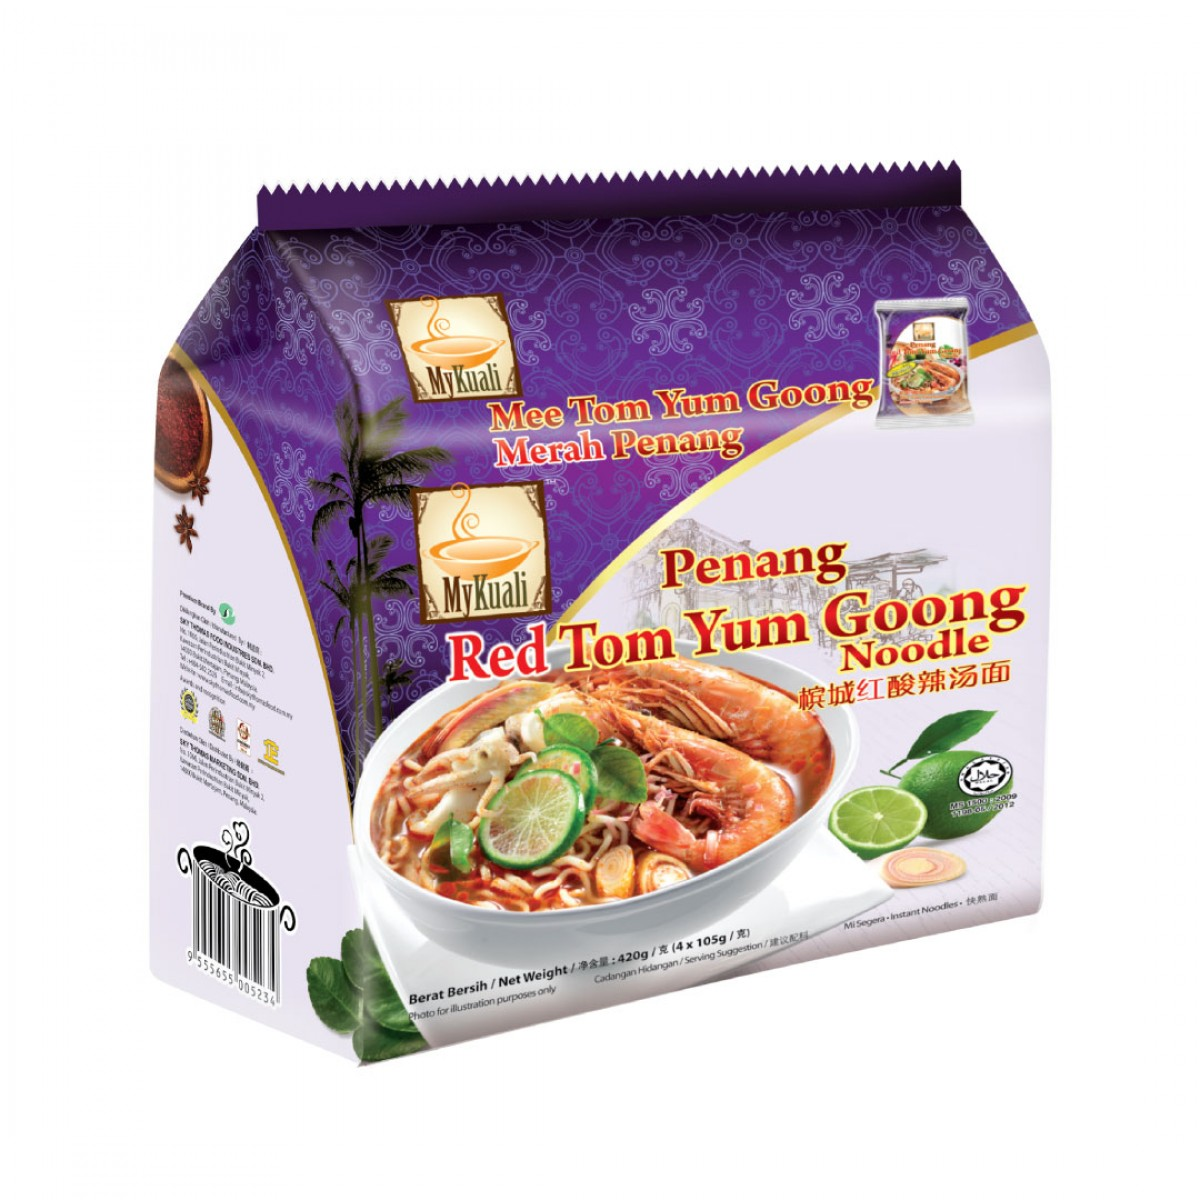 MyKuali Penang Red Tom Yum Goong Instant Noodle